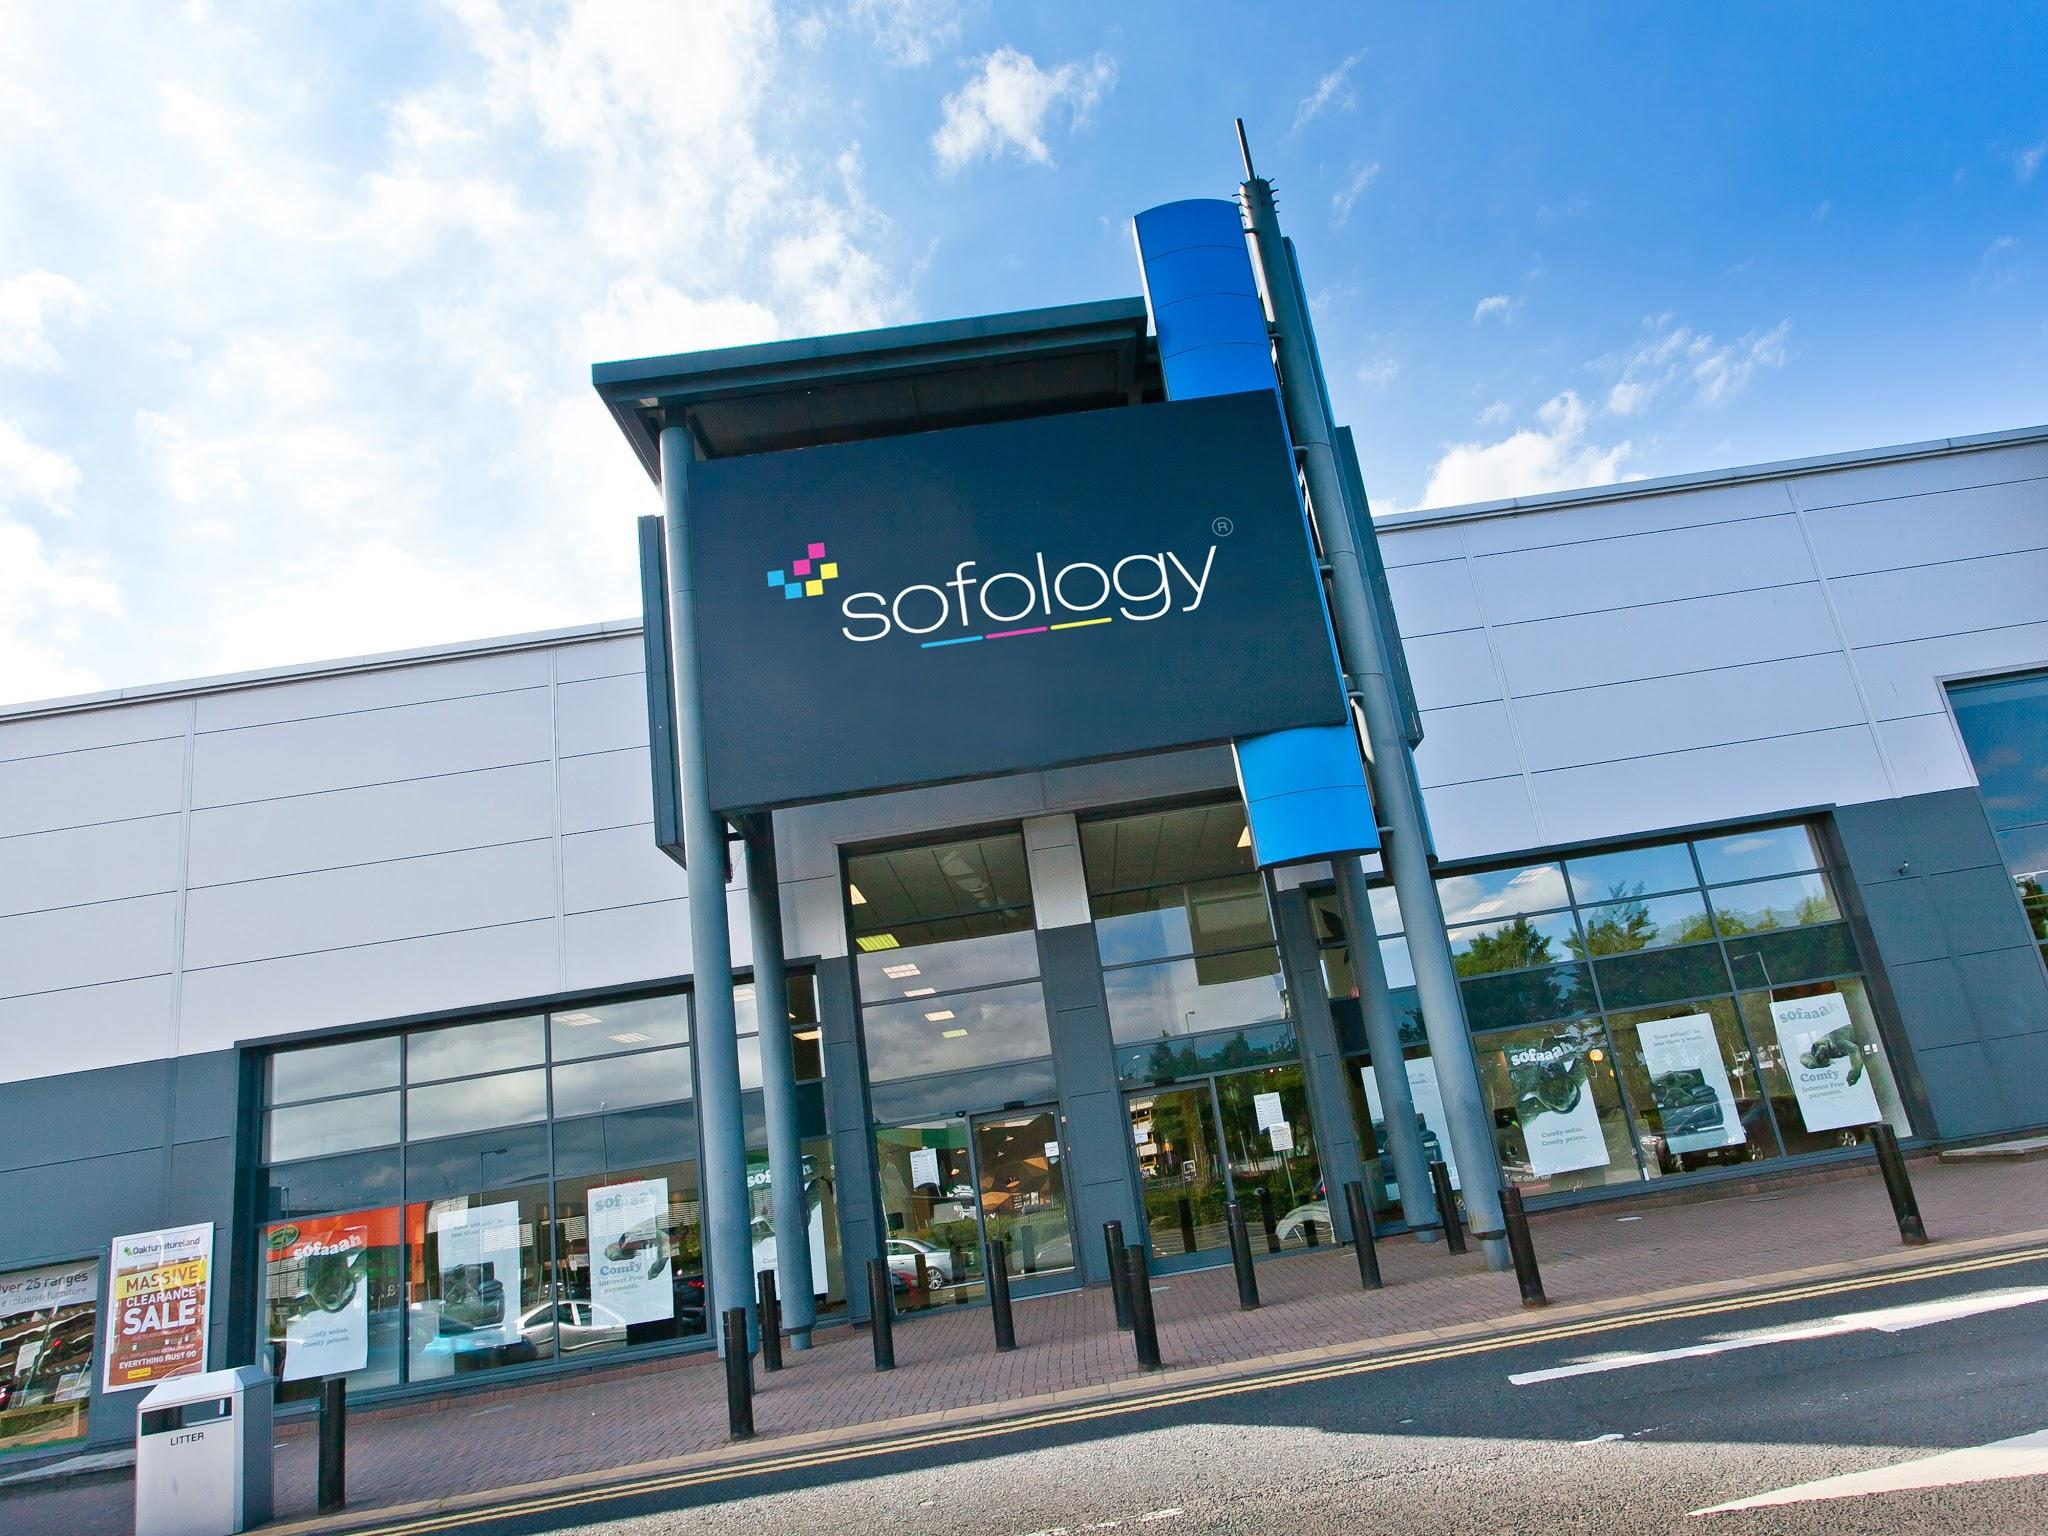 Sofology Sale Sofology Furniture For Home And Office In Gateshead Ne11 9xu